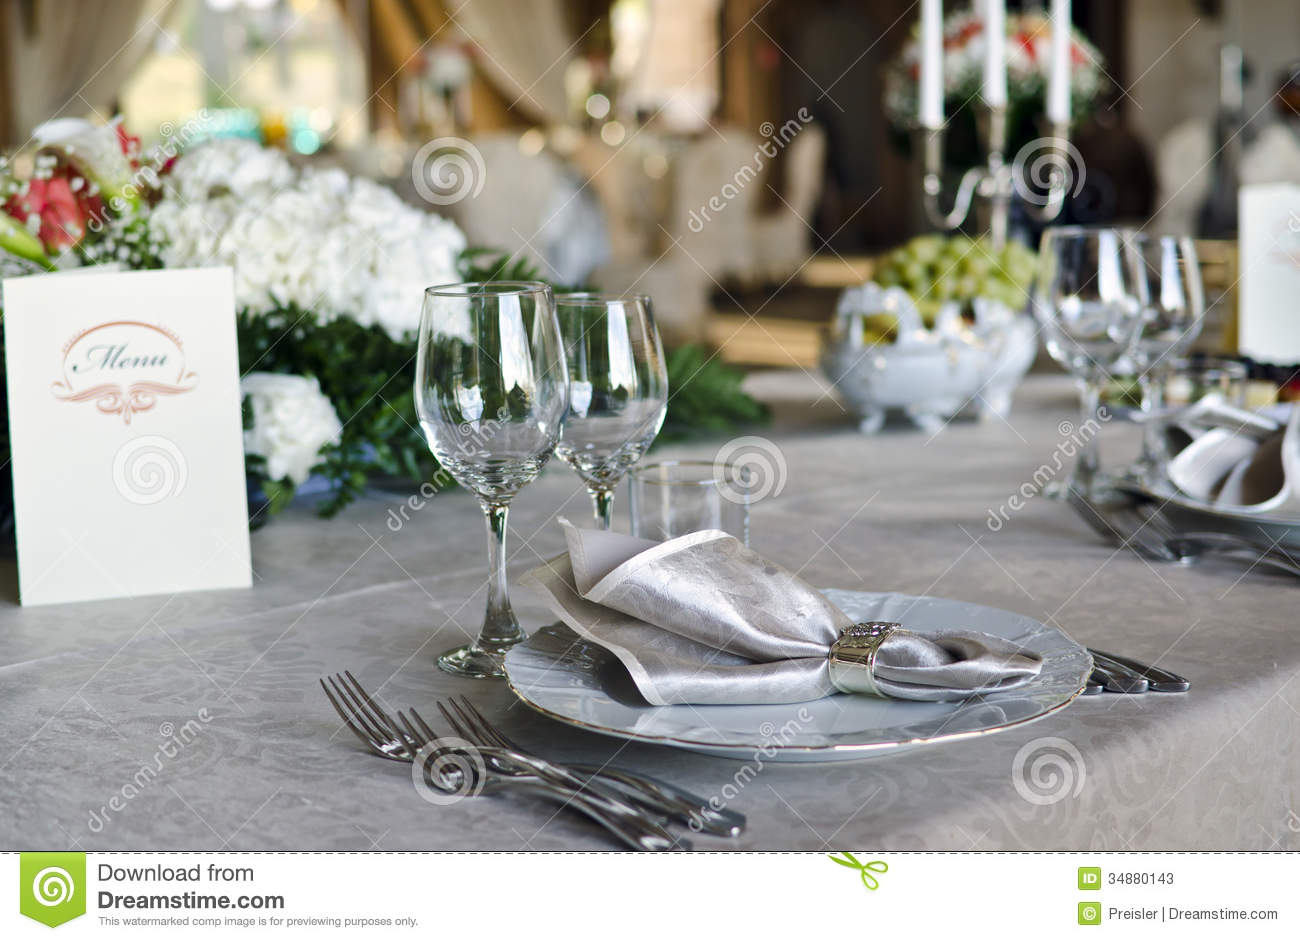 Elegant table setting stock photos image 34880143 for On the table restaurant